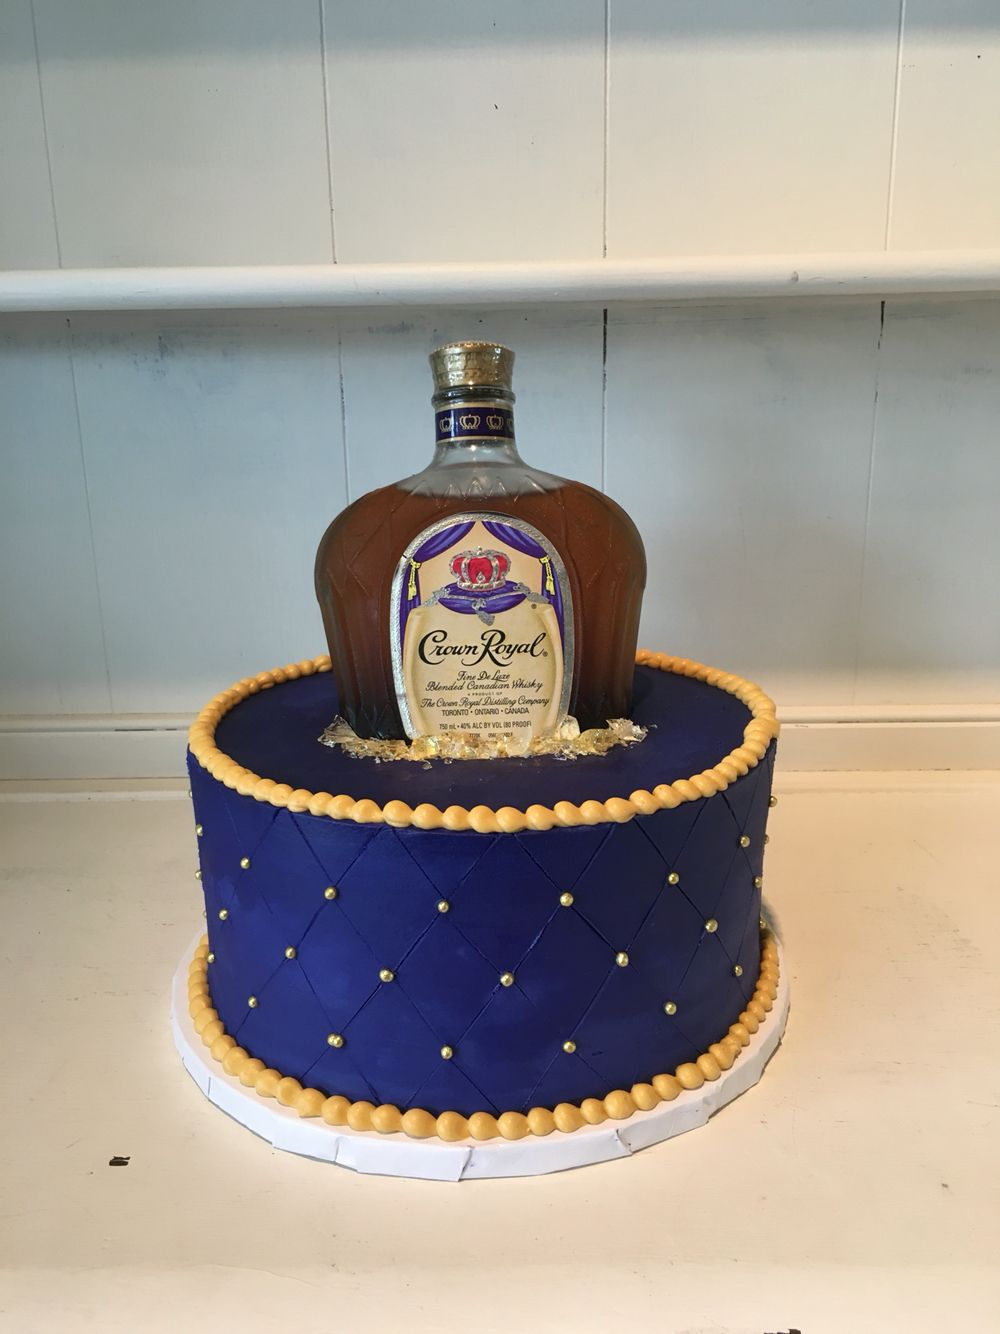 Liquor Bottle Cake Decorations Crown Royal Cake Theflourshopbakery Flourshoptx  Baking And